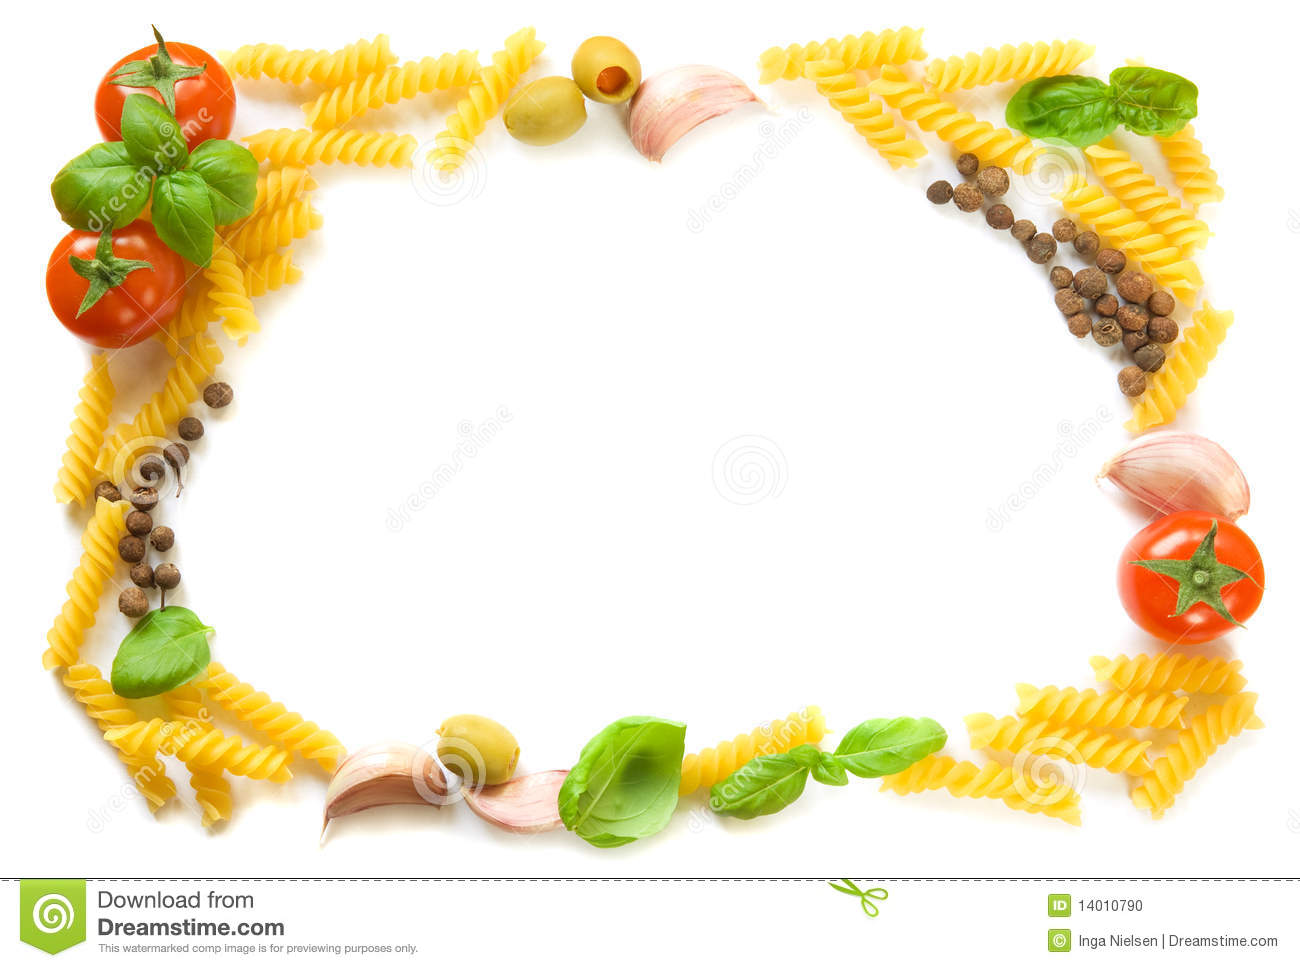 Pasta ingredients frame stock photo. Image of border ...